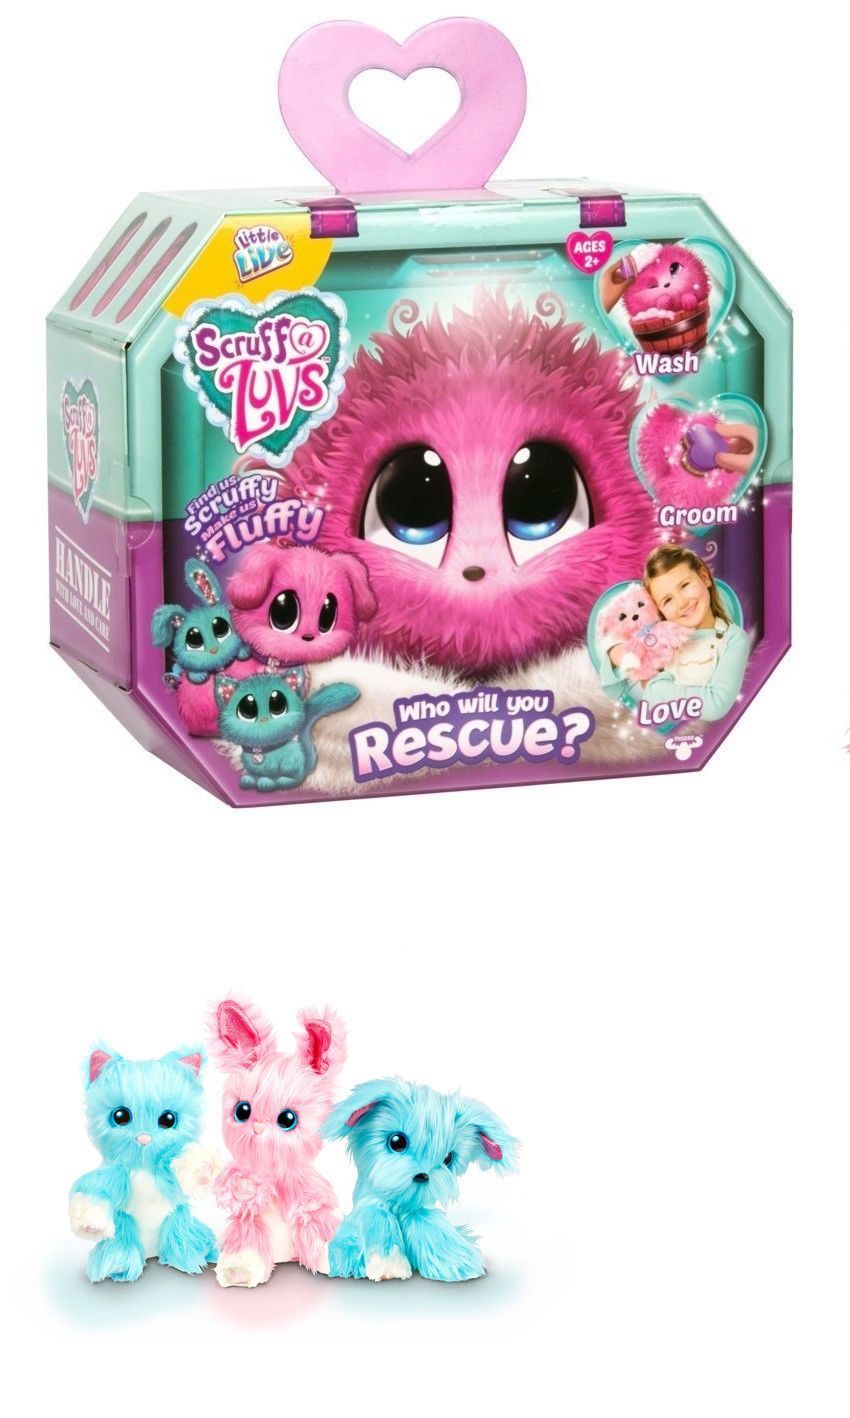 Other Interactive Toys 232 Little Live Pets Scruff A Luvs Pink Puppy Kitten Or Bunny Buy It Now Christmas Gifts For Kids Little Live Pets Princess Toys